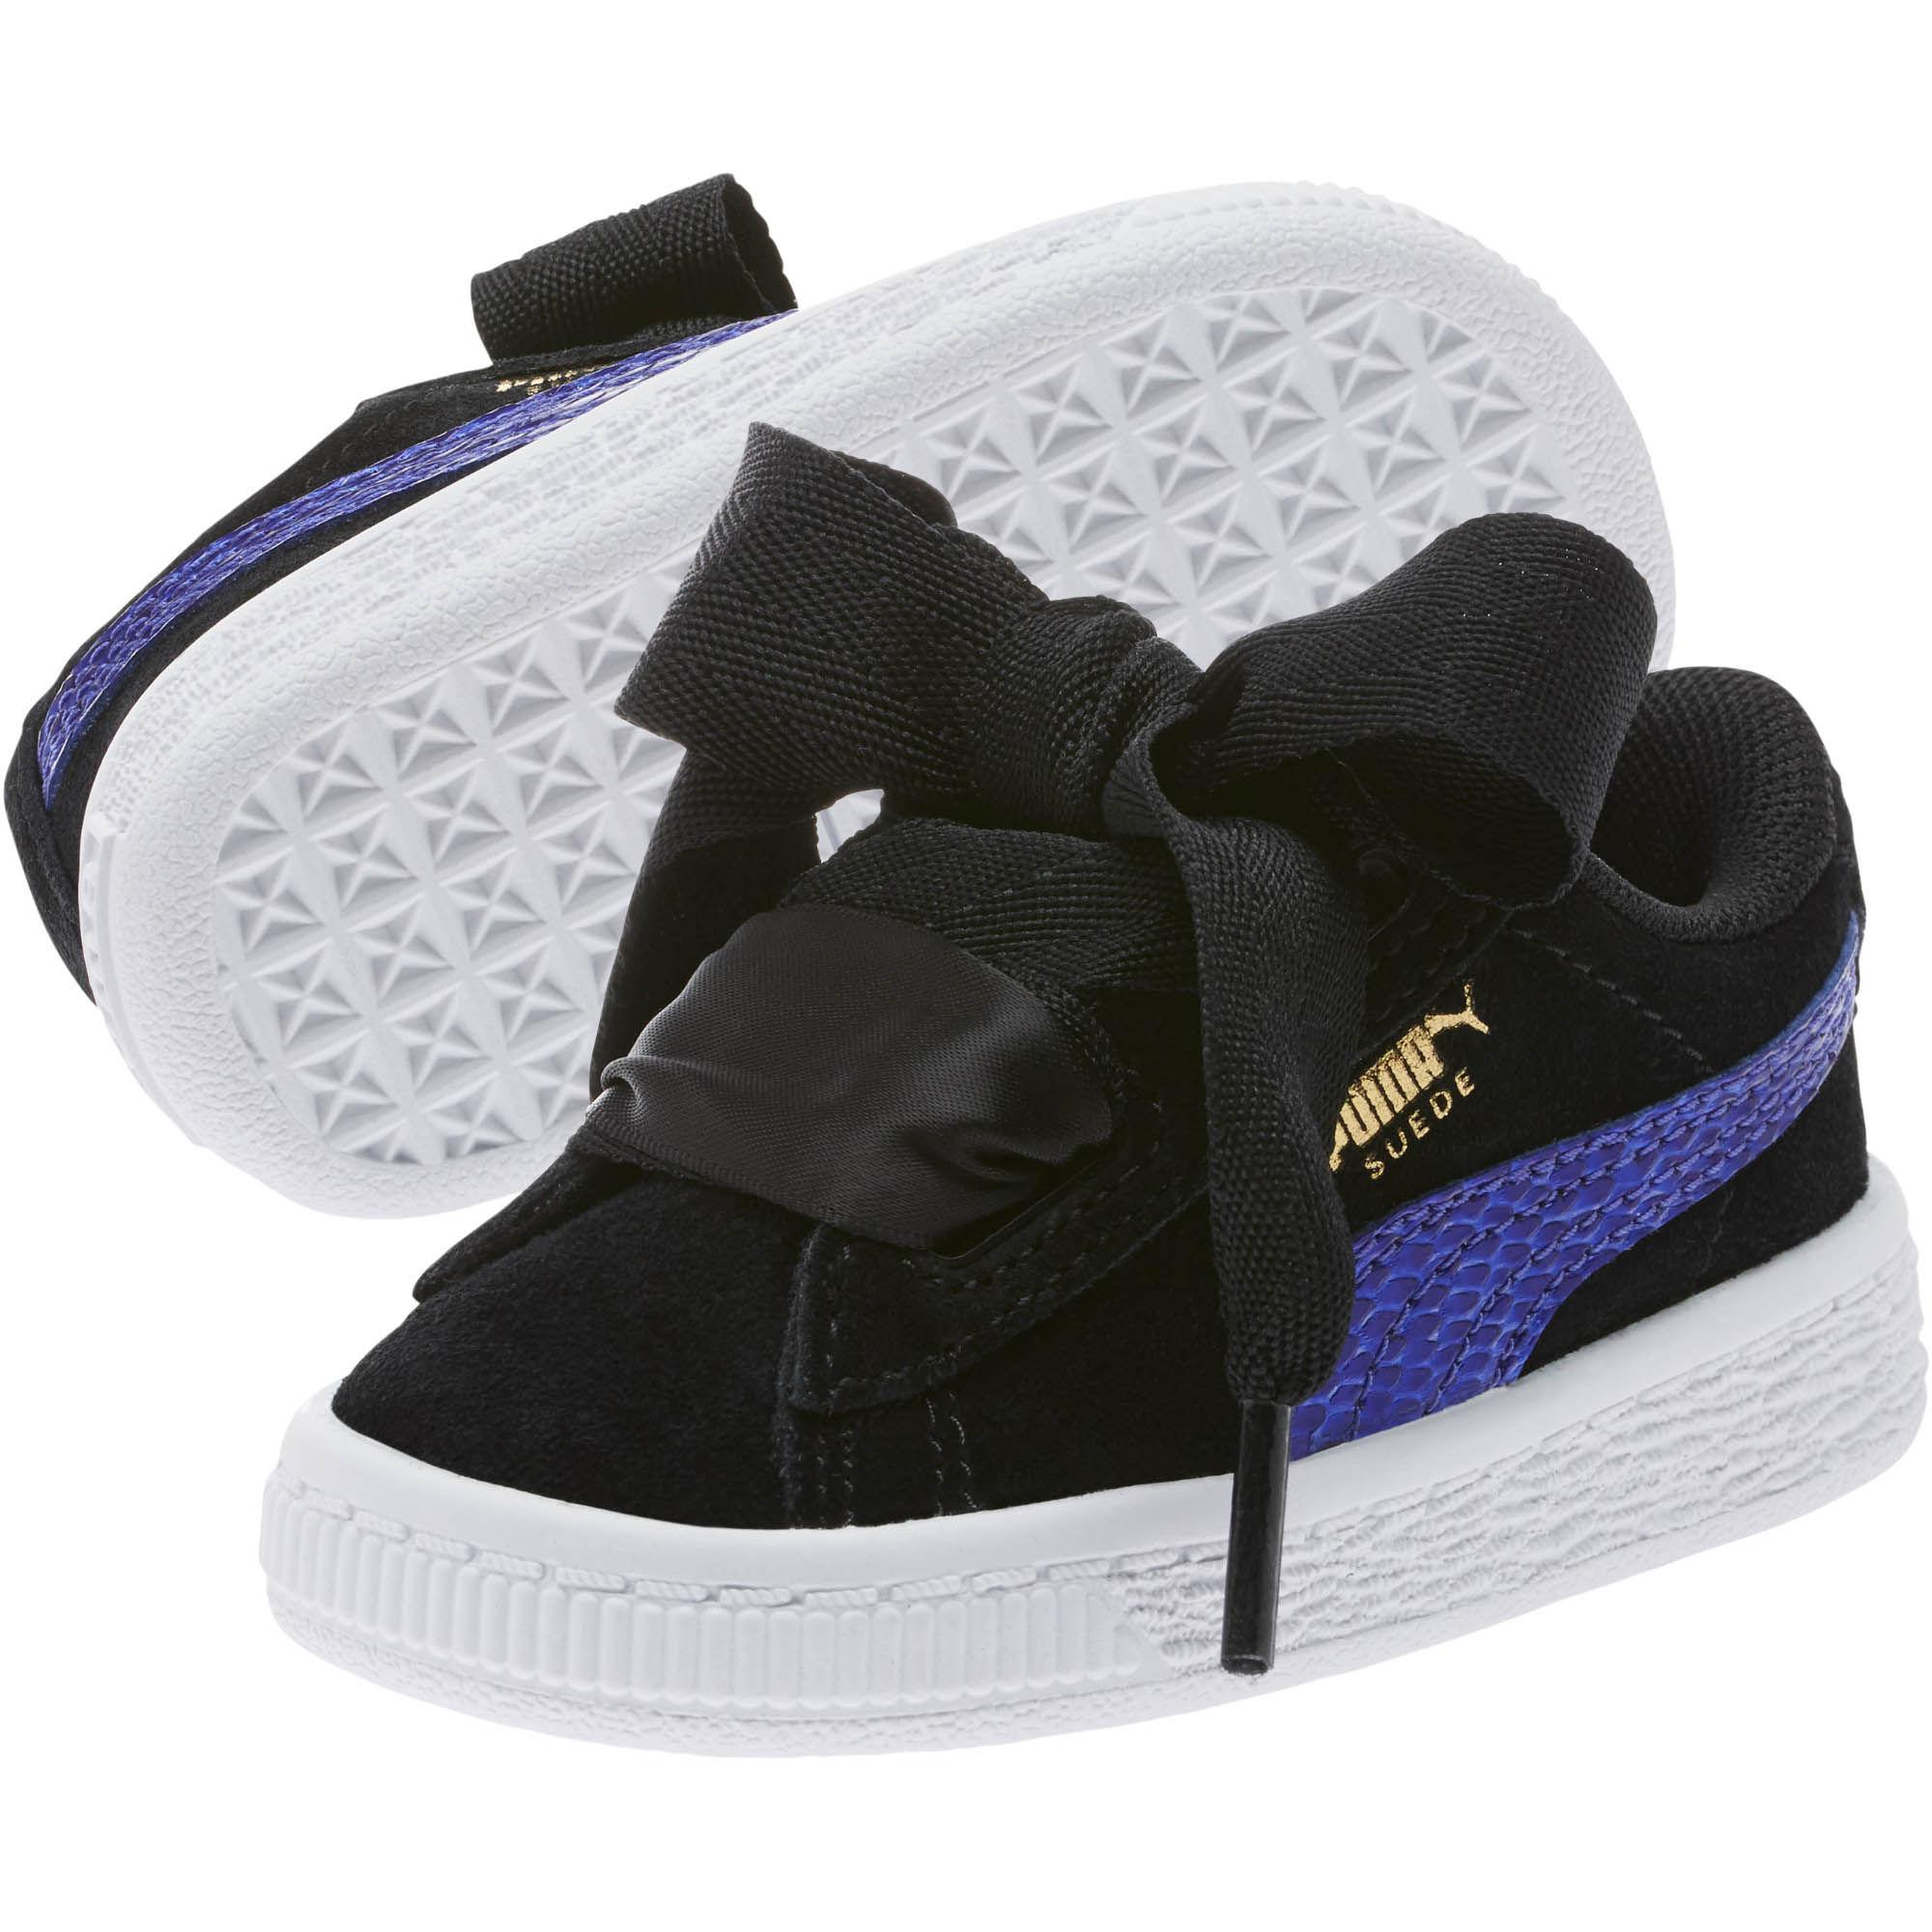 size 40 0bc31 75921 puma-Puma-Black-Baja-Blue-Suede-Heart-Snake-Girls-Sneakers.jpeg